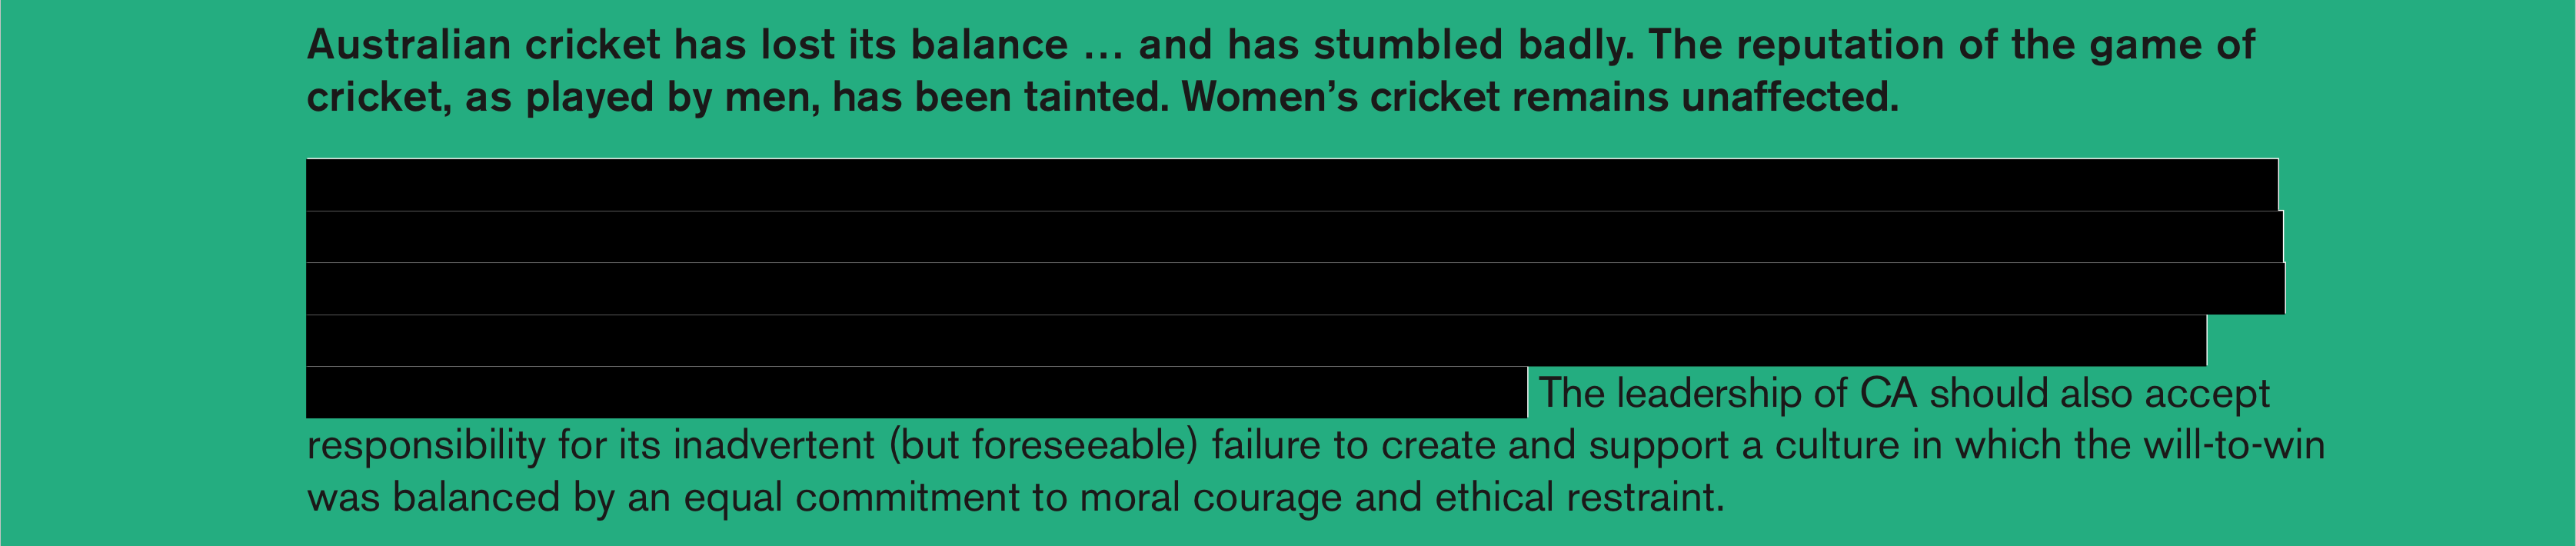 Cricket Australia's culture problem is it still doesn't think fans are stakeholders in the game